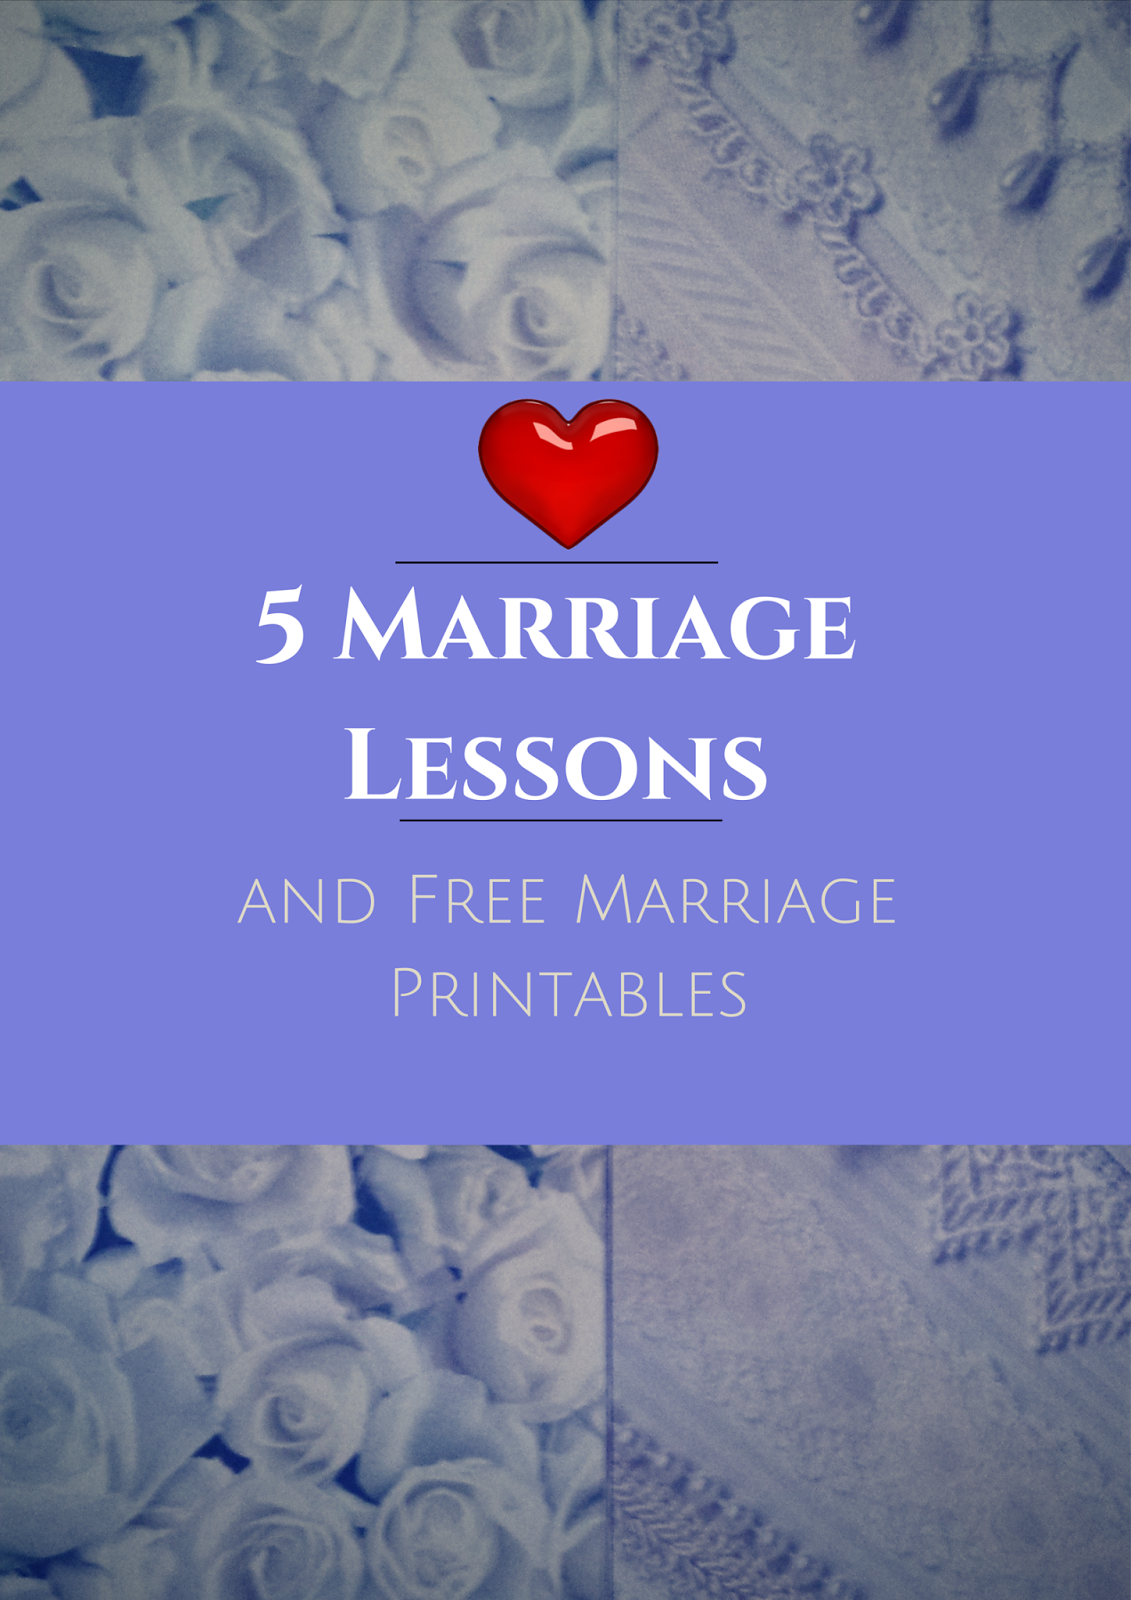 5 Marriage Lessons And Free Marriage Printables